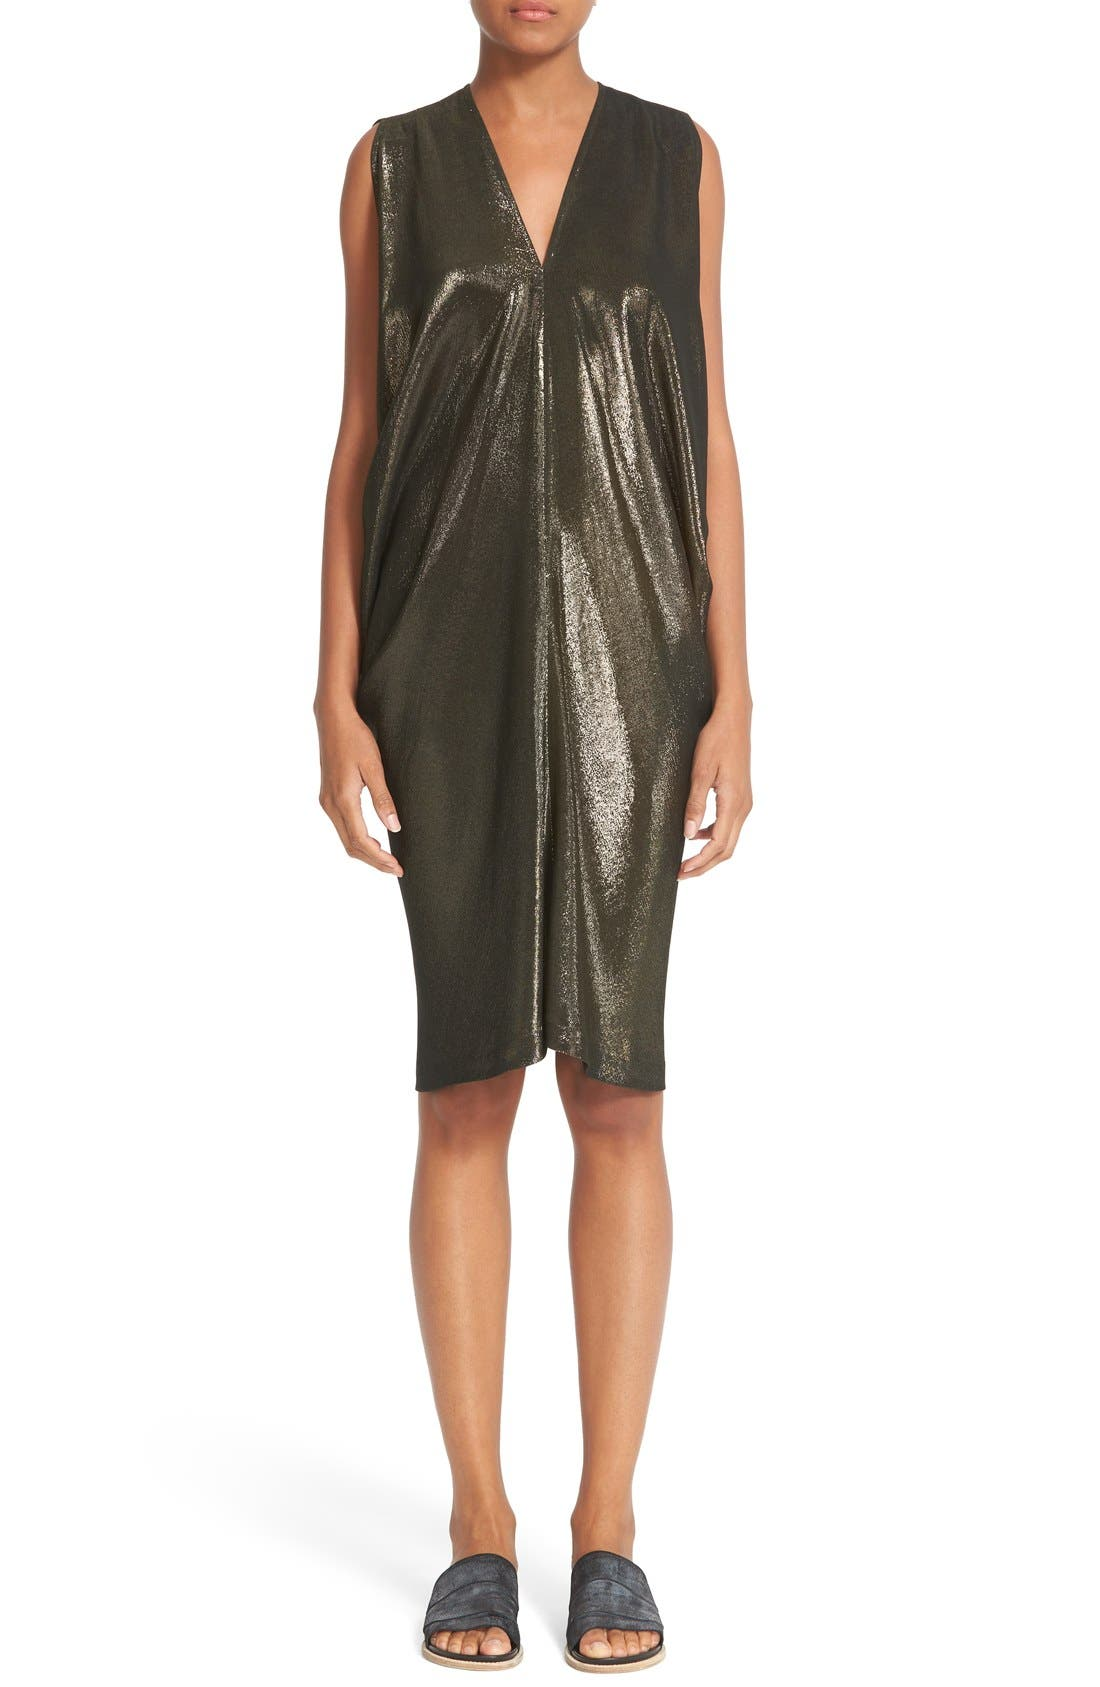 ZERO + MARIA CORNEJO 'Libi' Shine Drape Dress